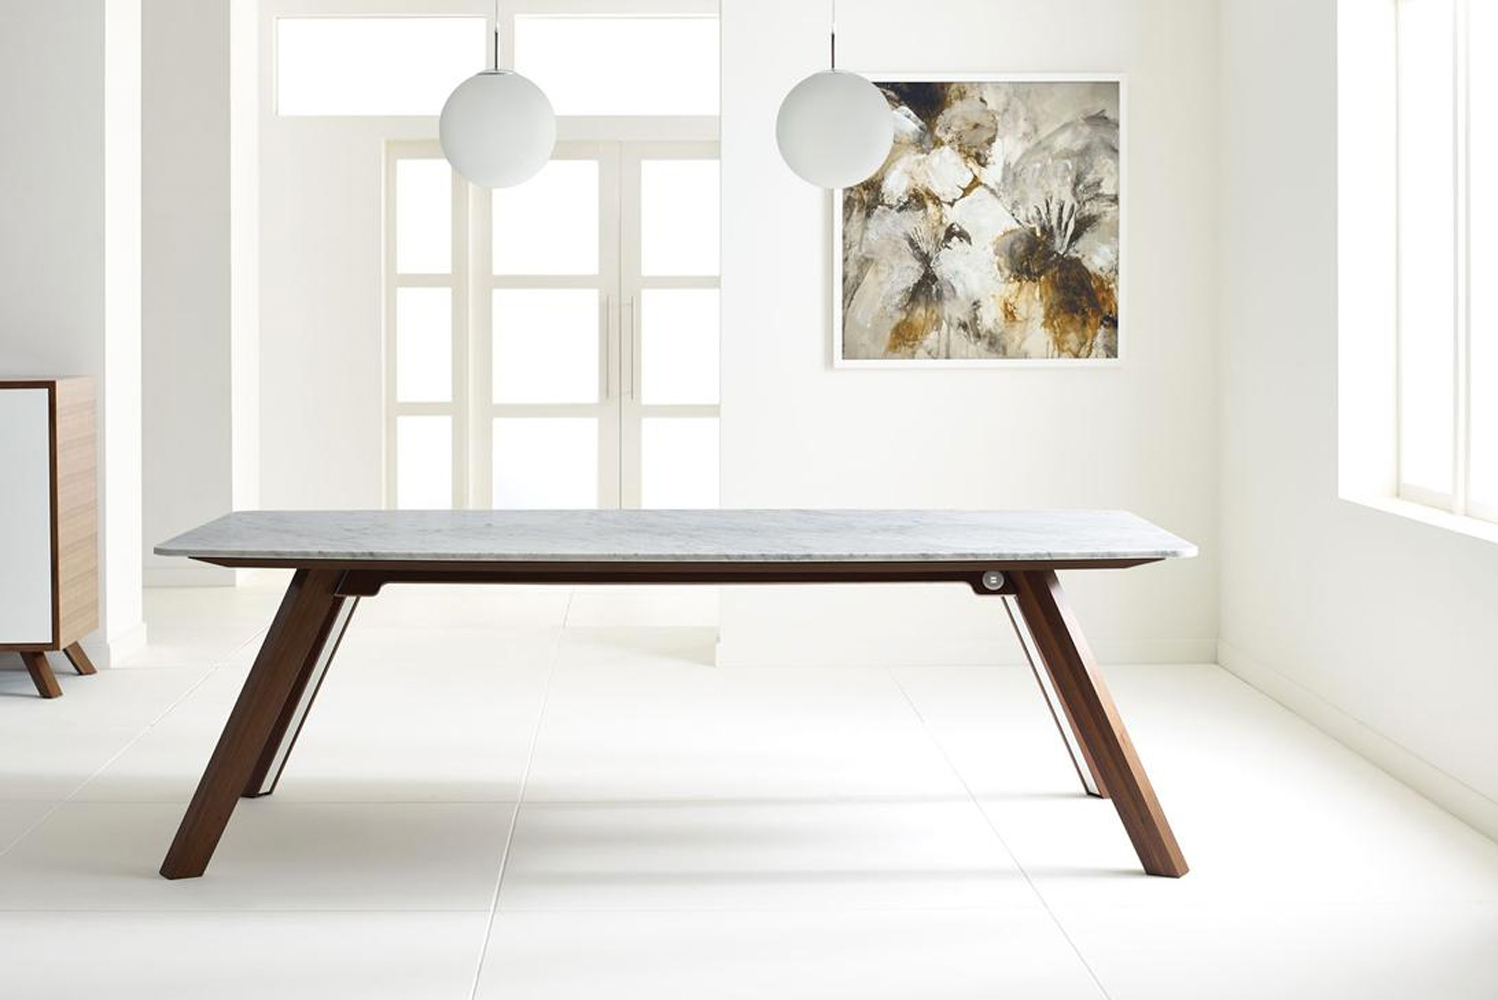 The Boss table is available with wood, stone or ice painted back painted glass tops.